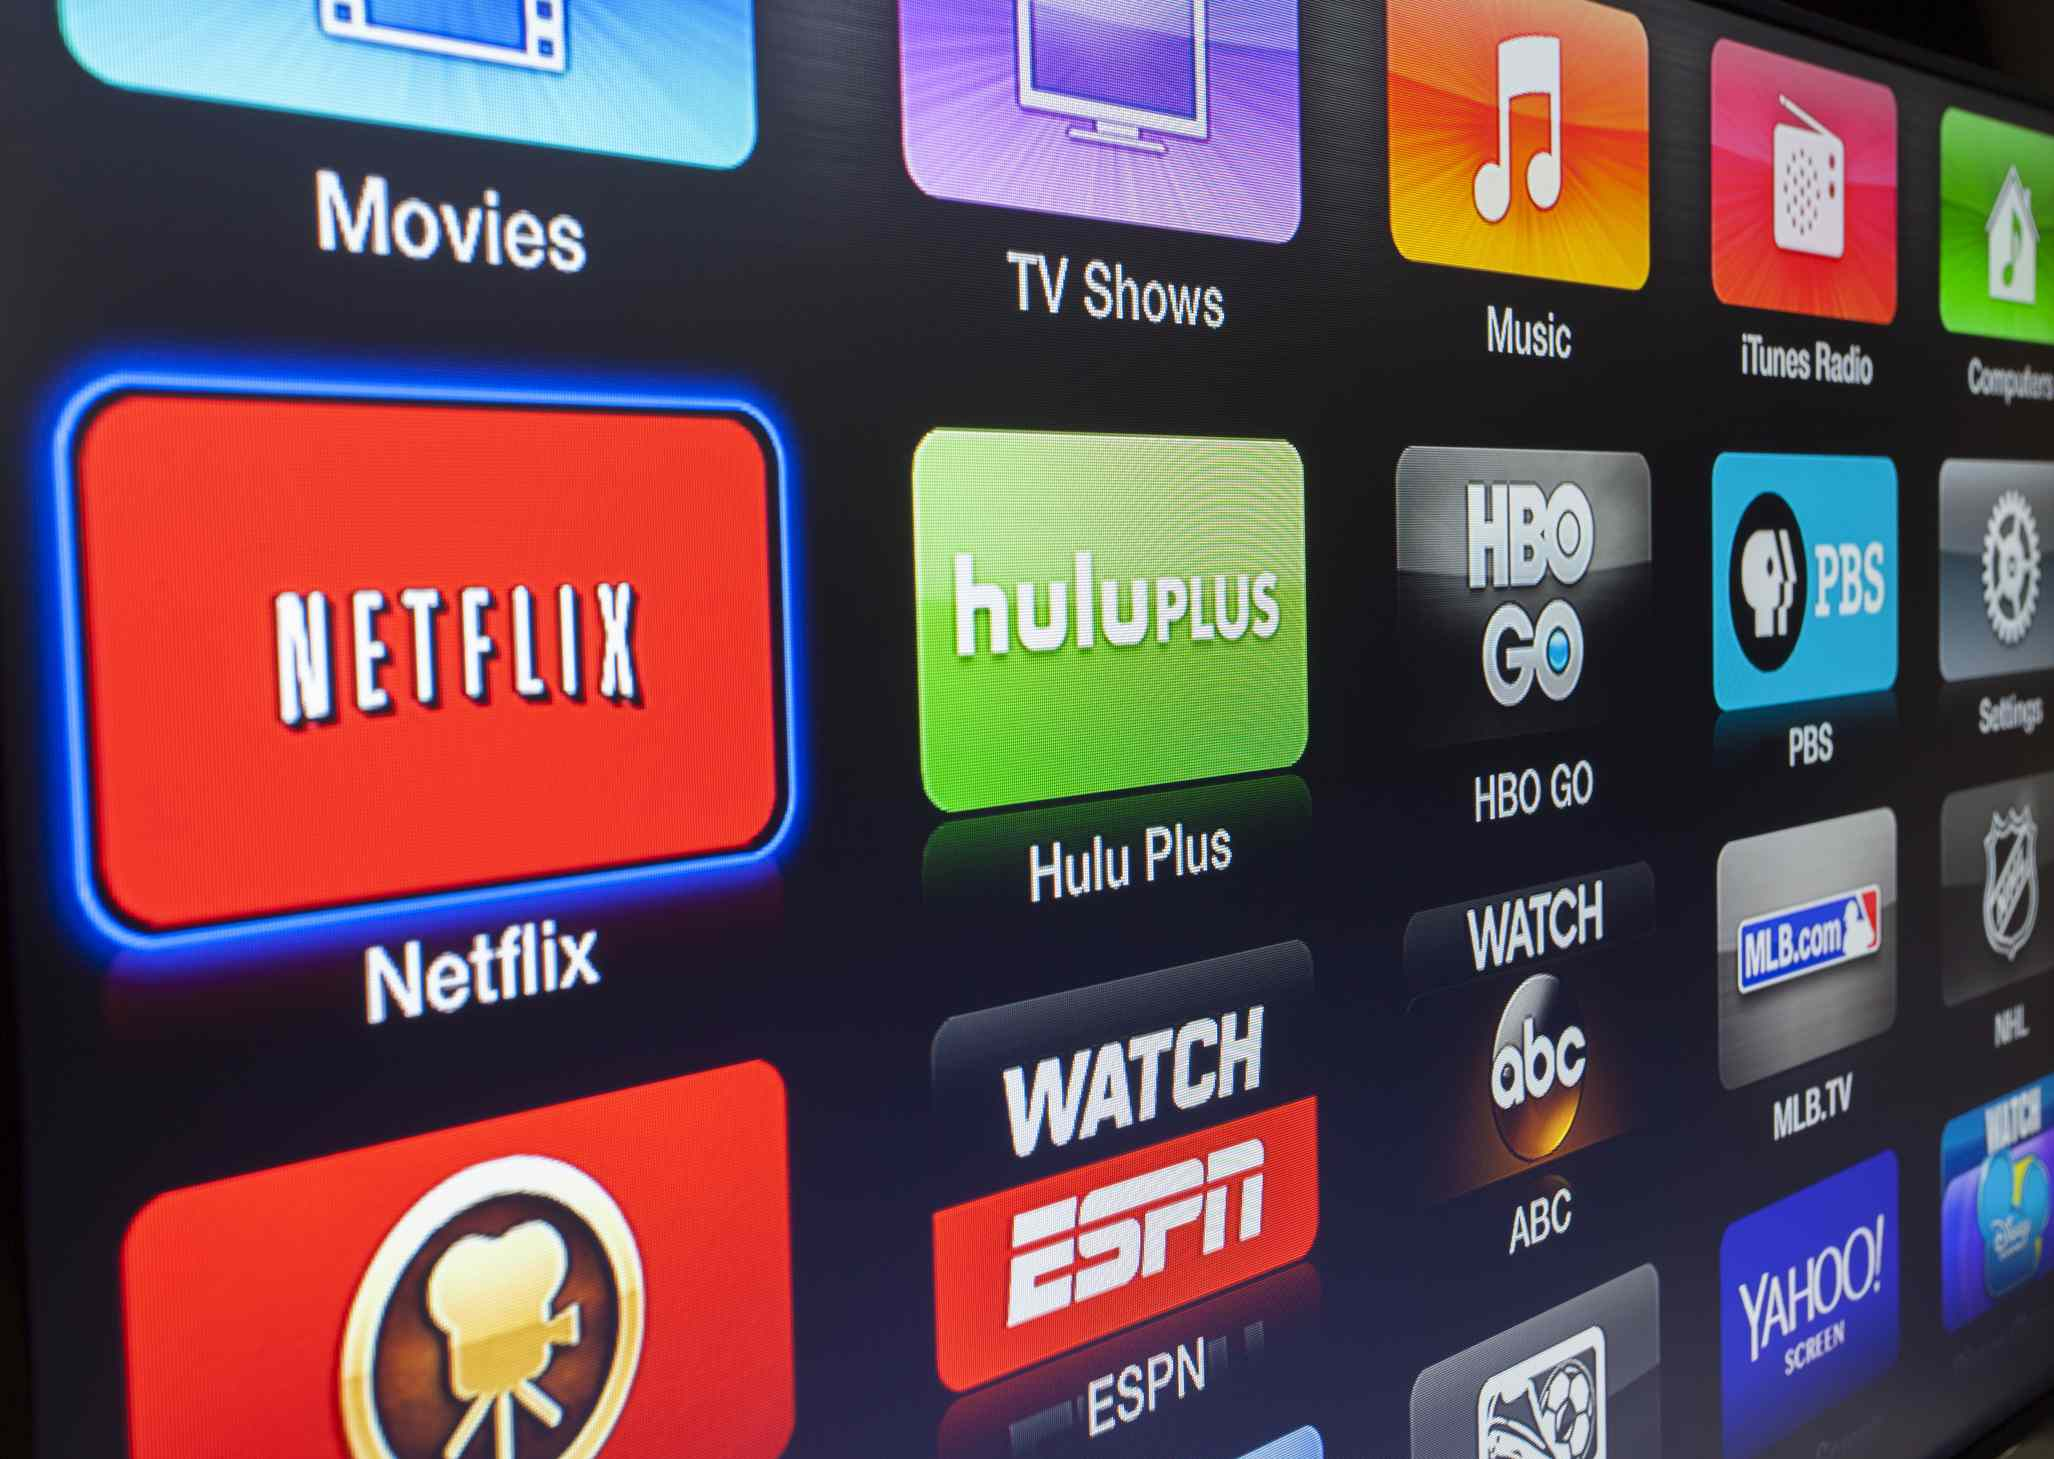 The 6 Best Apple TV Remote Apps for Android